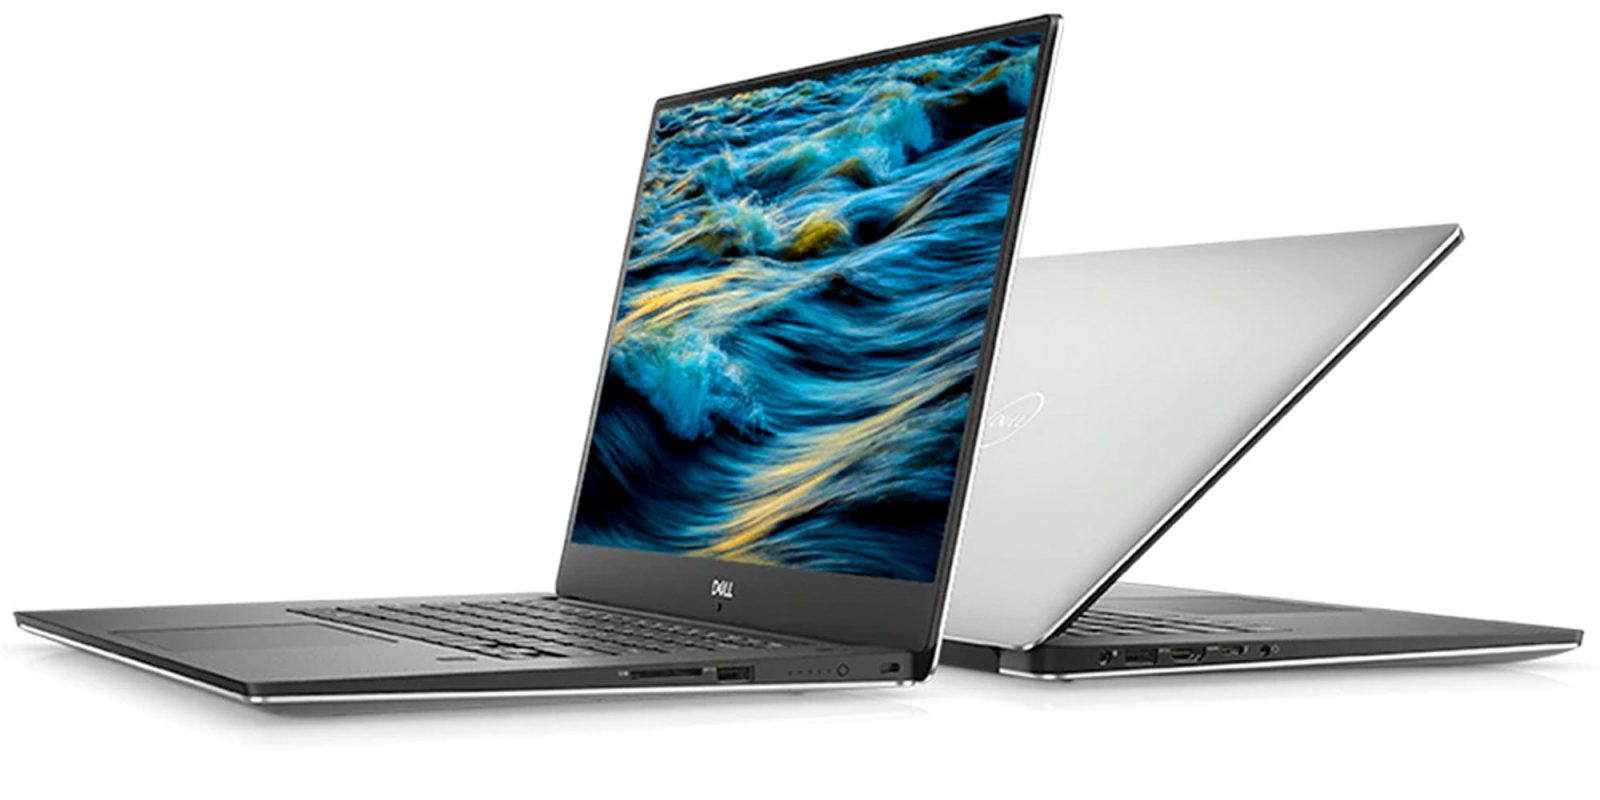 Dell's XPS 15 is at one of its best prices ever of $1,140 (Reg